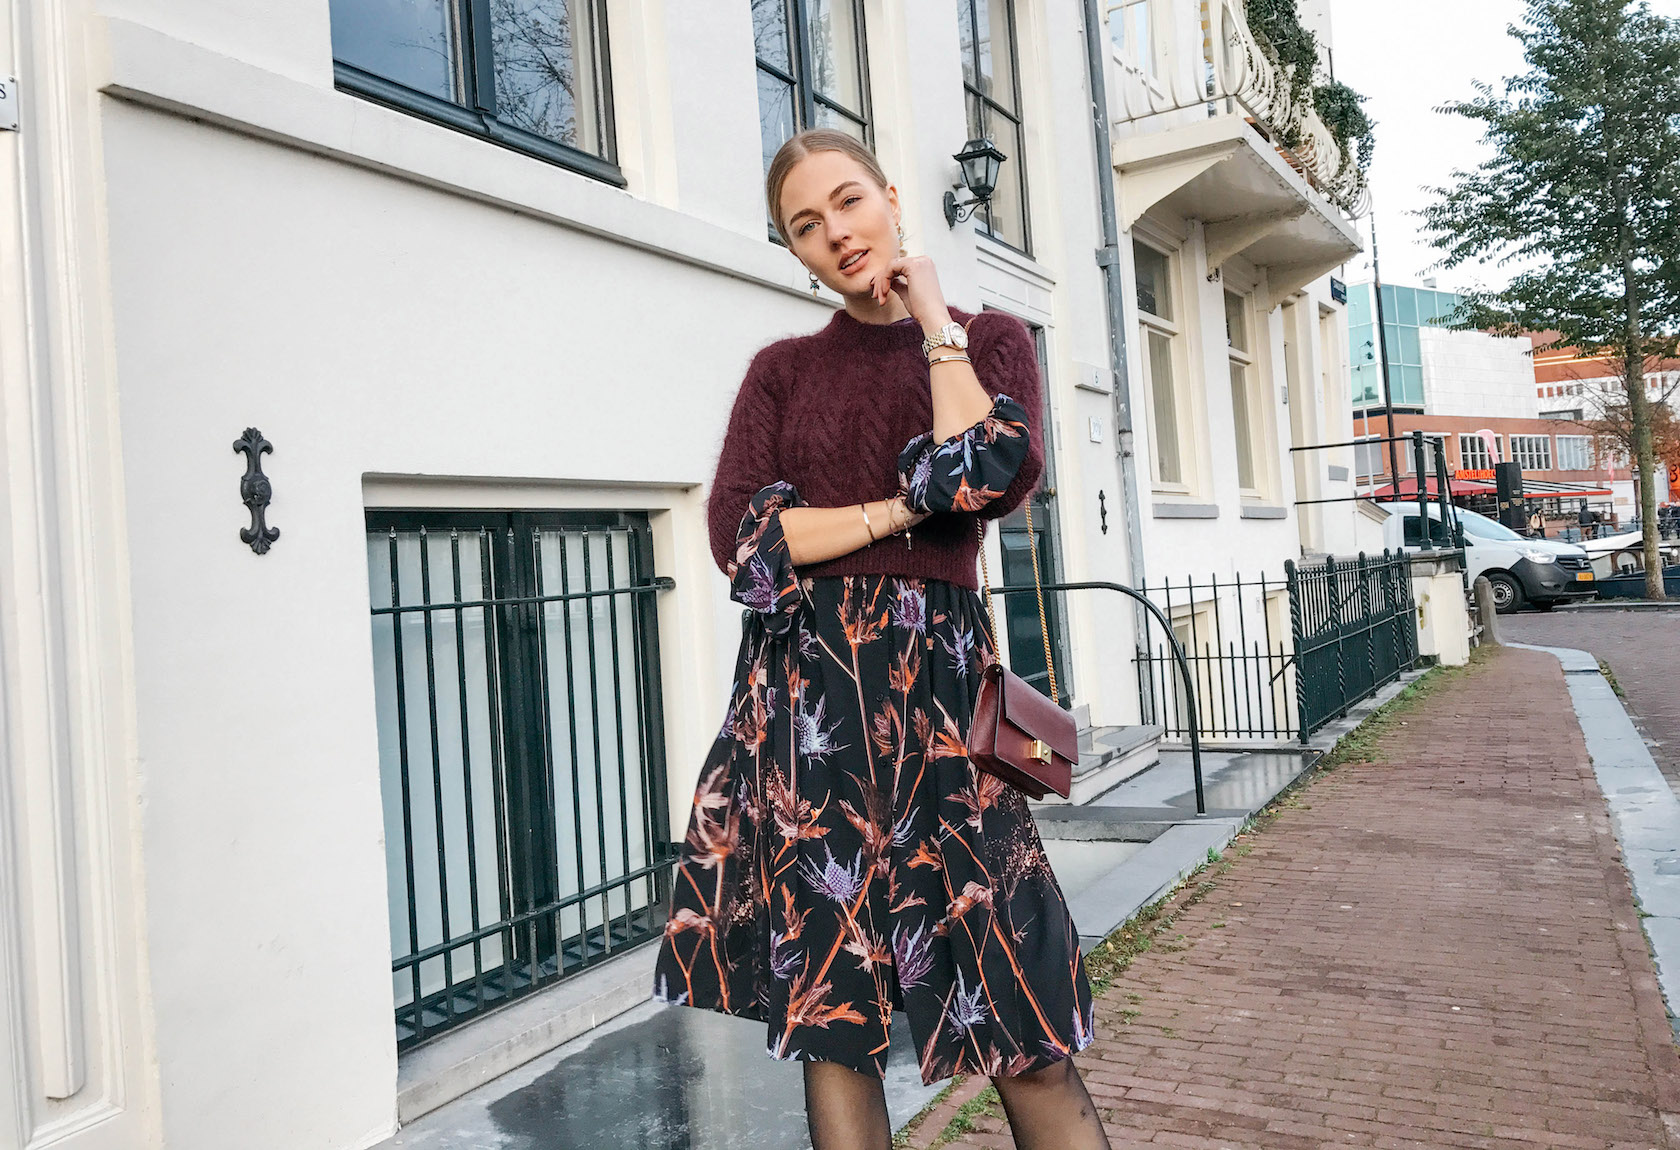 CROPPED SWEATER AND FLORALS